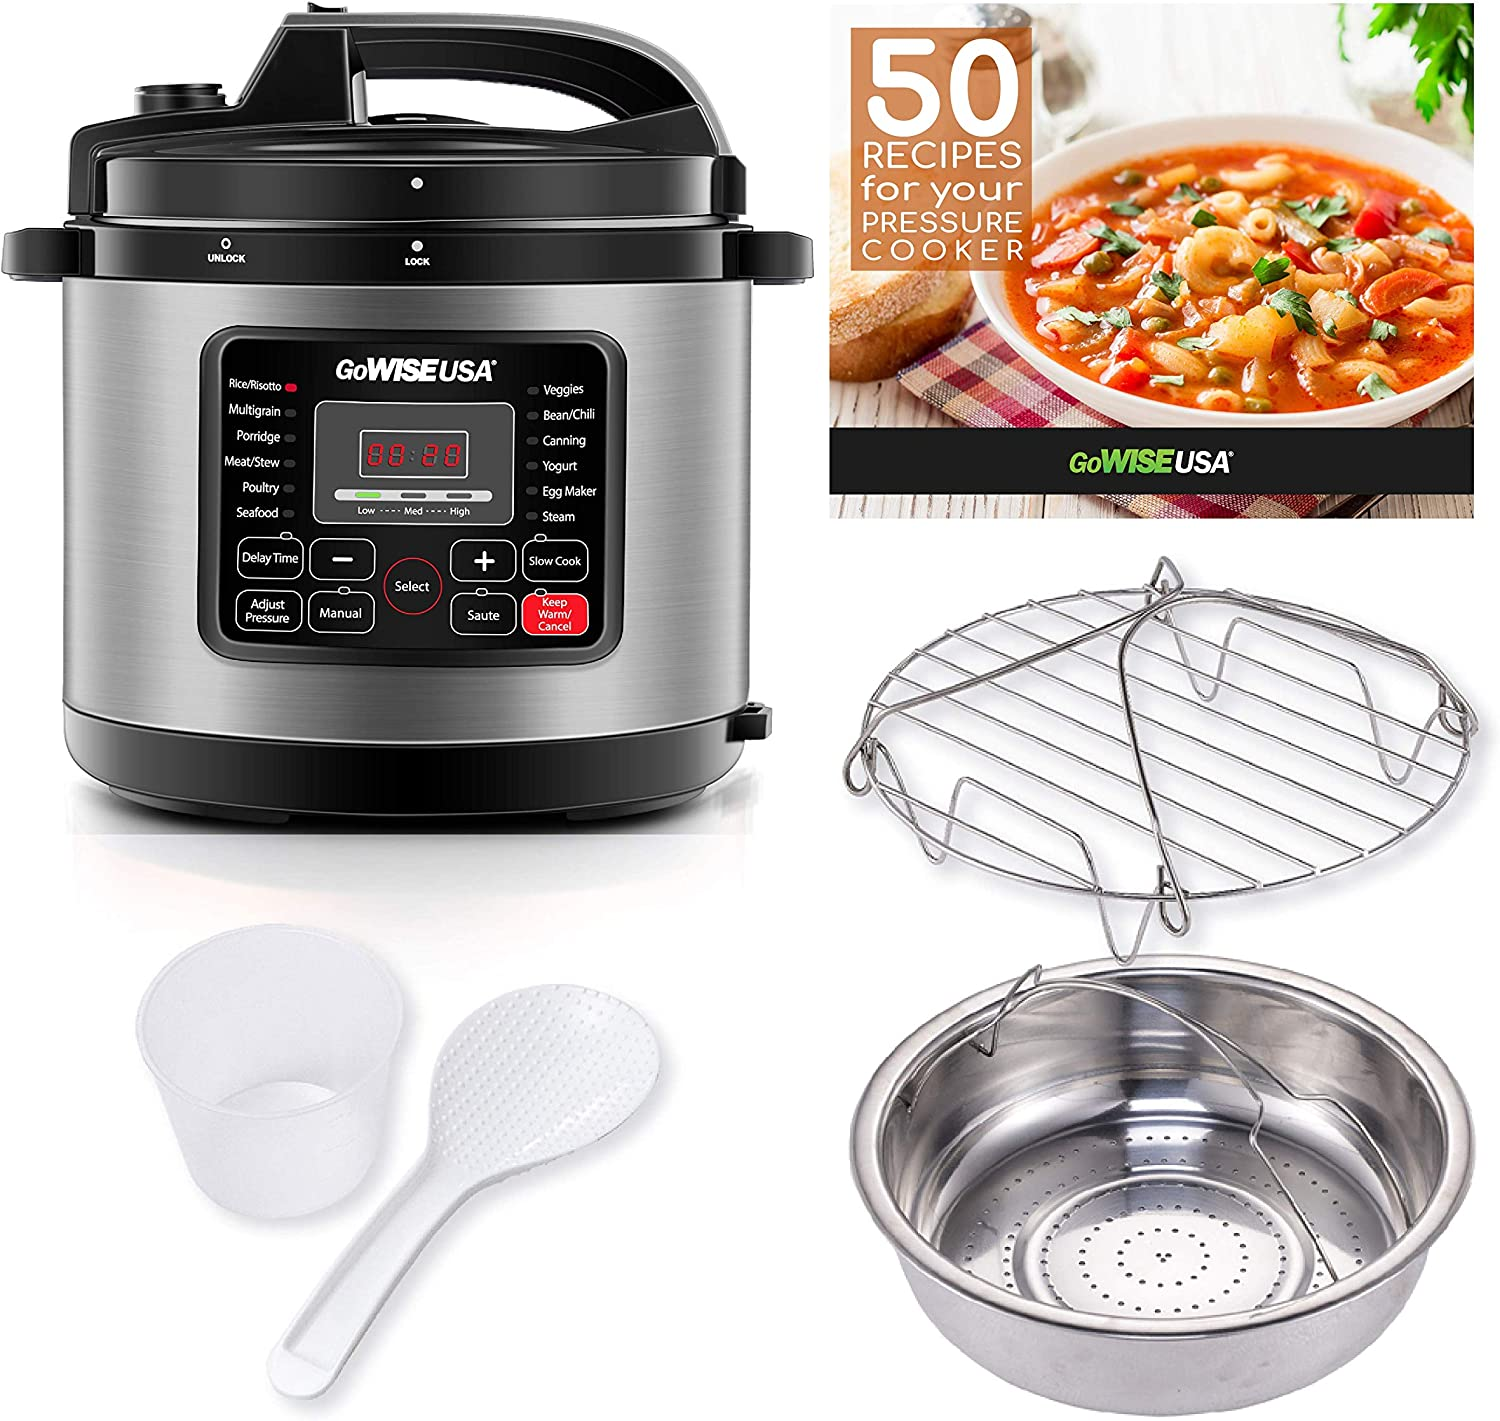 GoWISE USA GW22711 6-Quart 12-in-1 Multi-Use Programmable Pressure Cooker, Slow Cook, Rice, Steamer, Saute, Yogurt Maker, and Warmer, Stainless Steel, 6-Qt